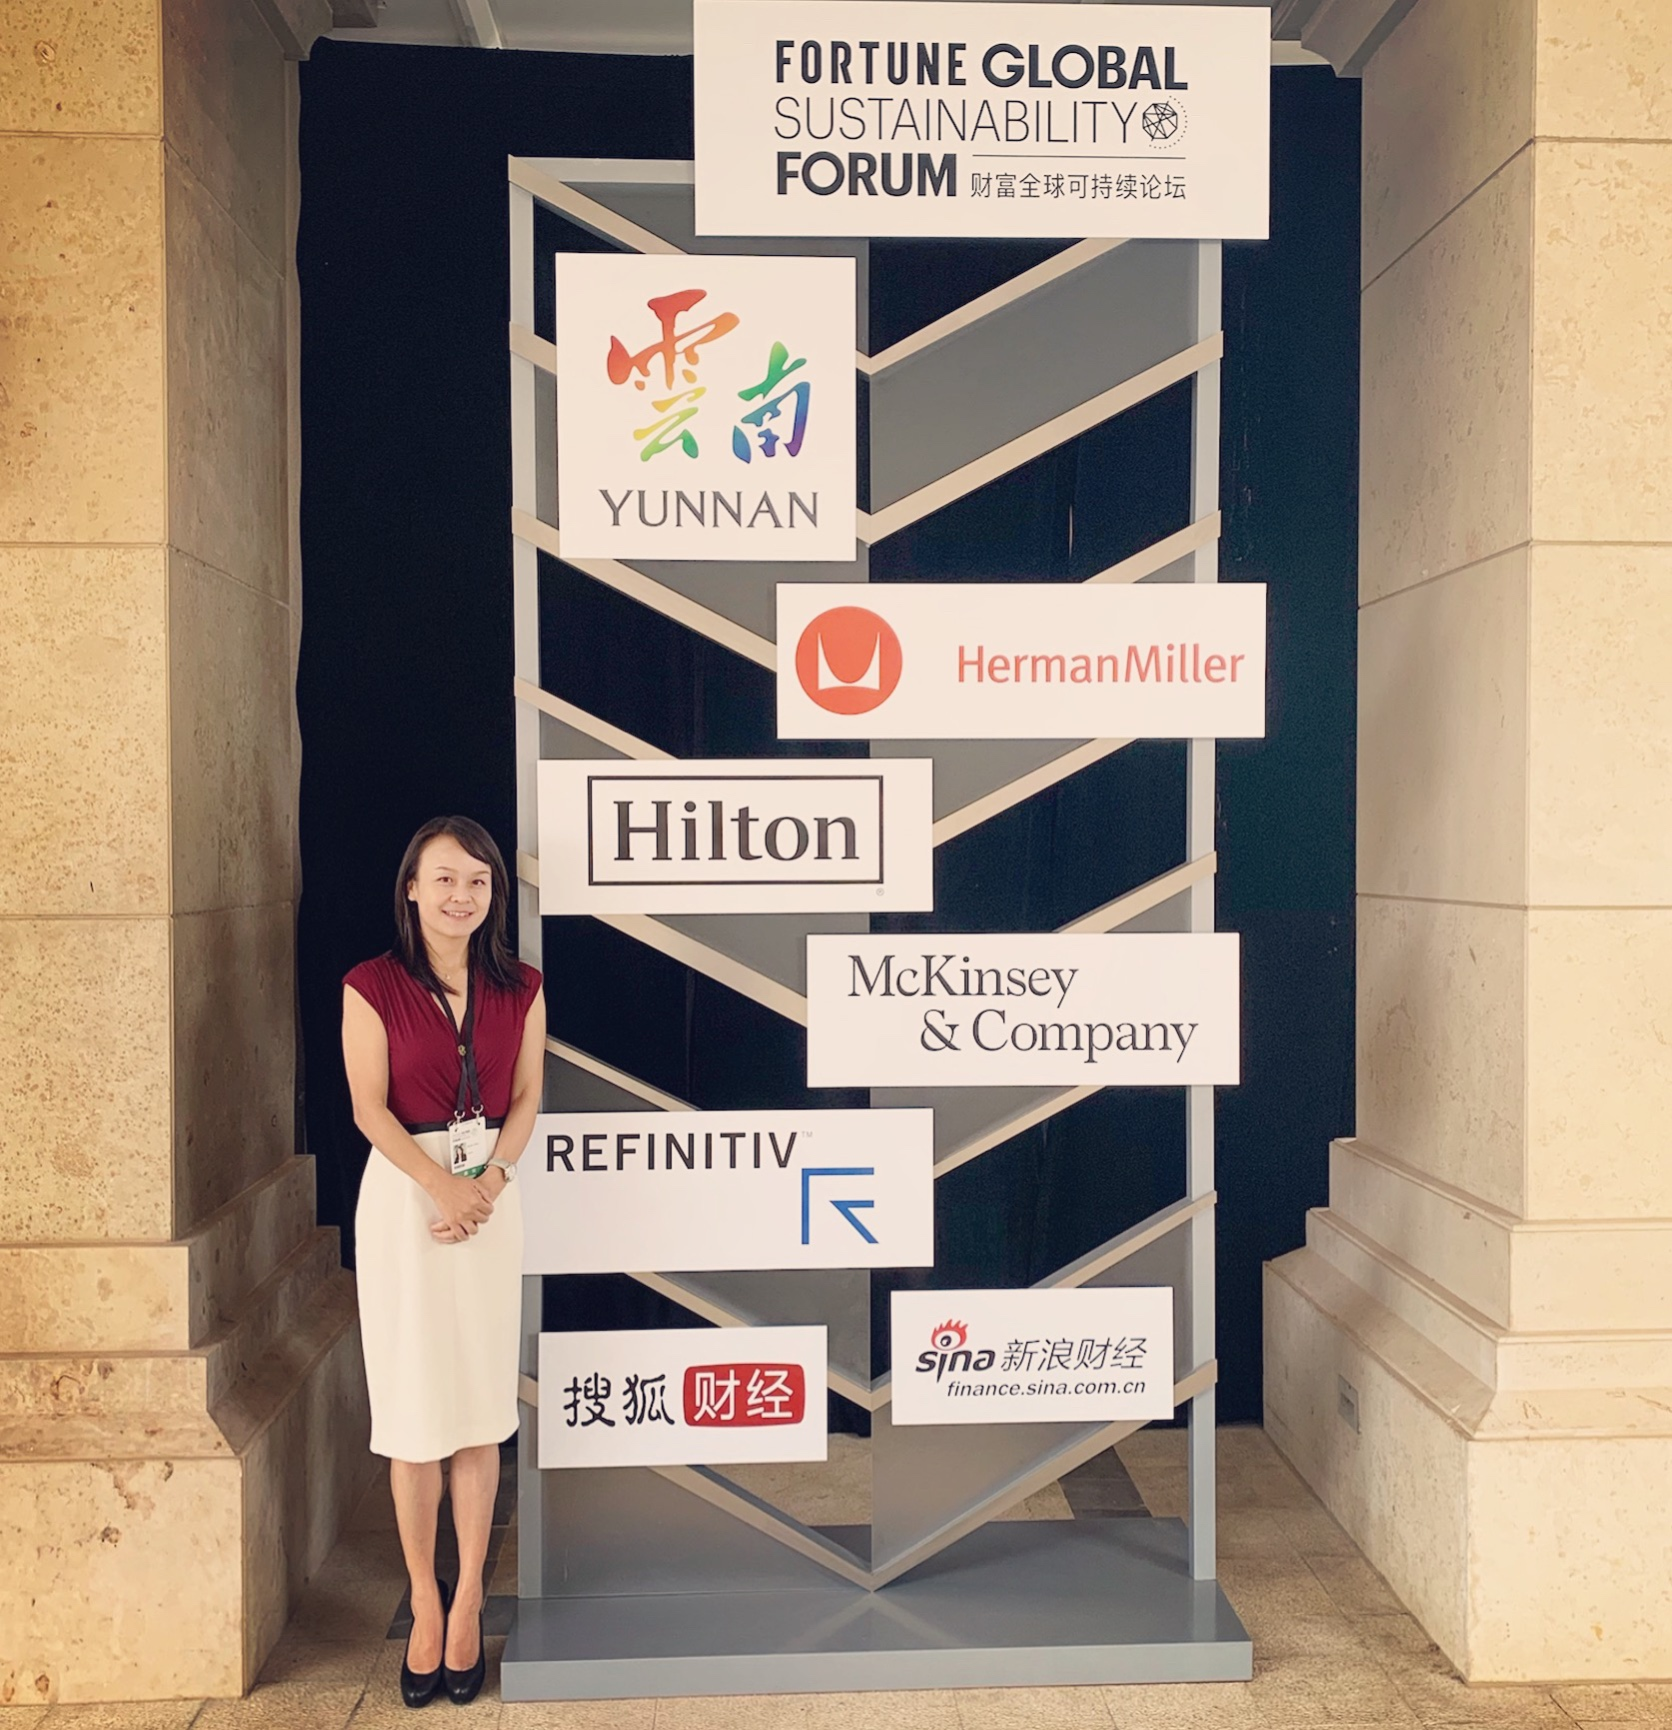 Nicole Chen, Head of China at Refinitiv, attended The Fortune Global Sustainability Forum 2019